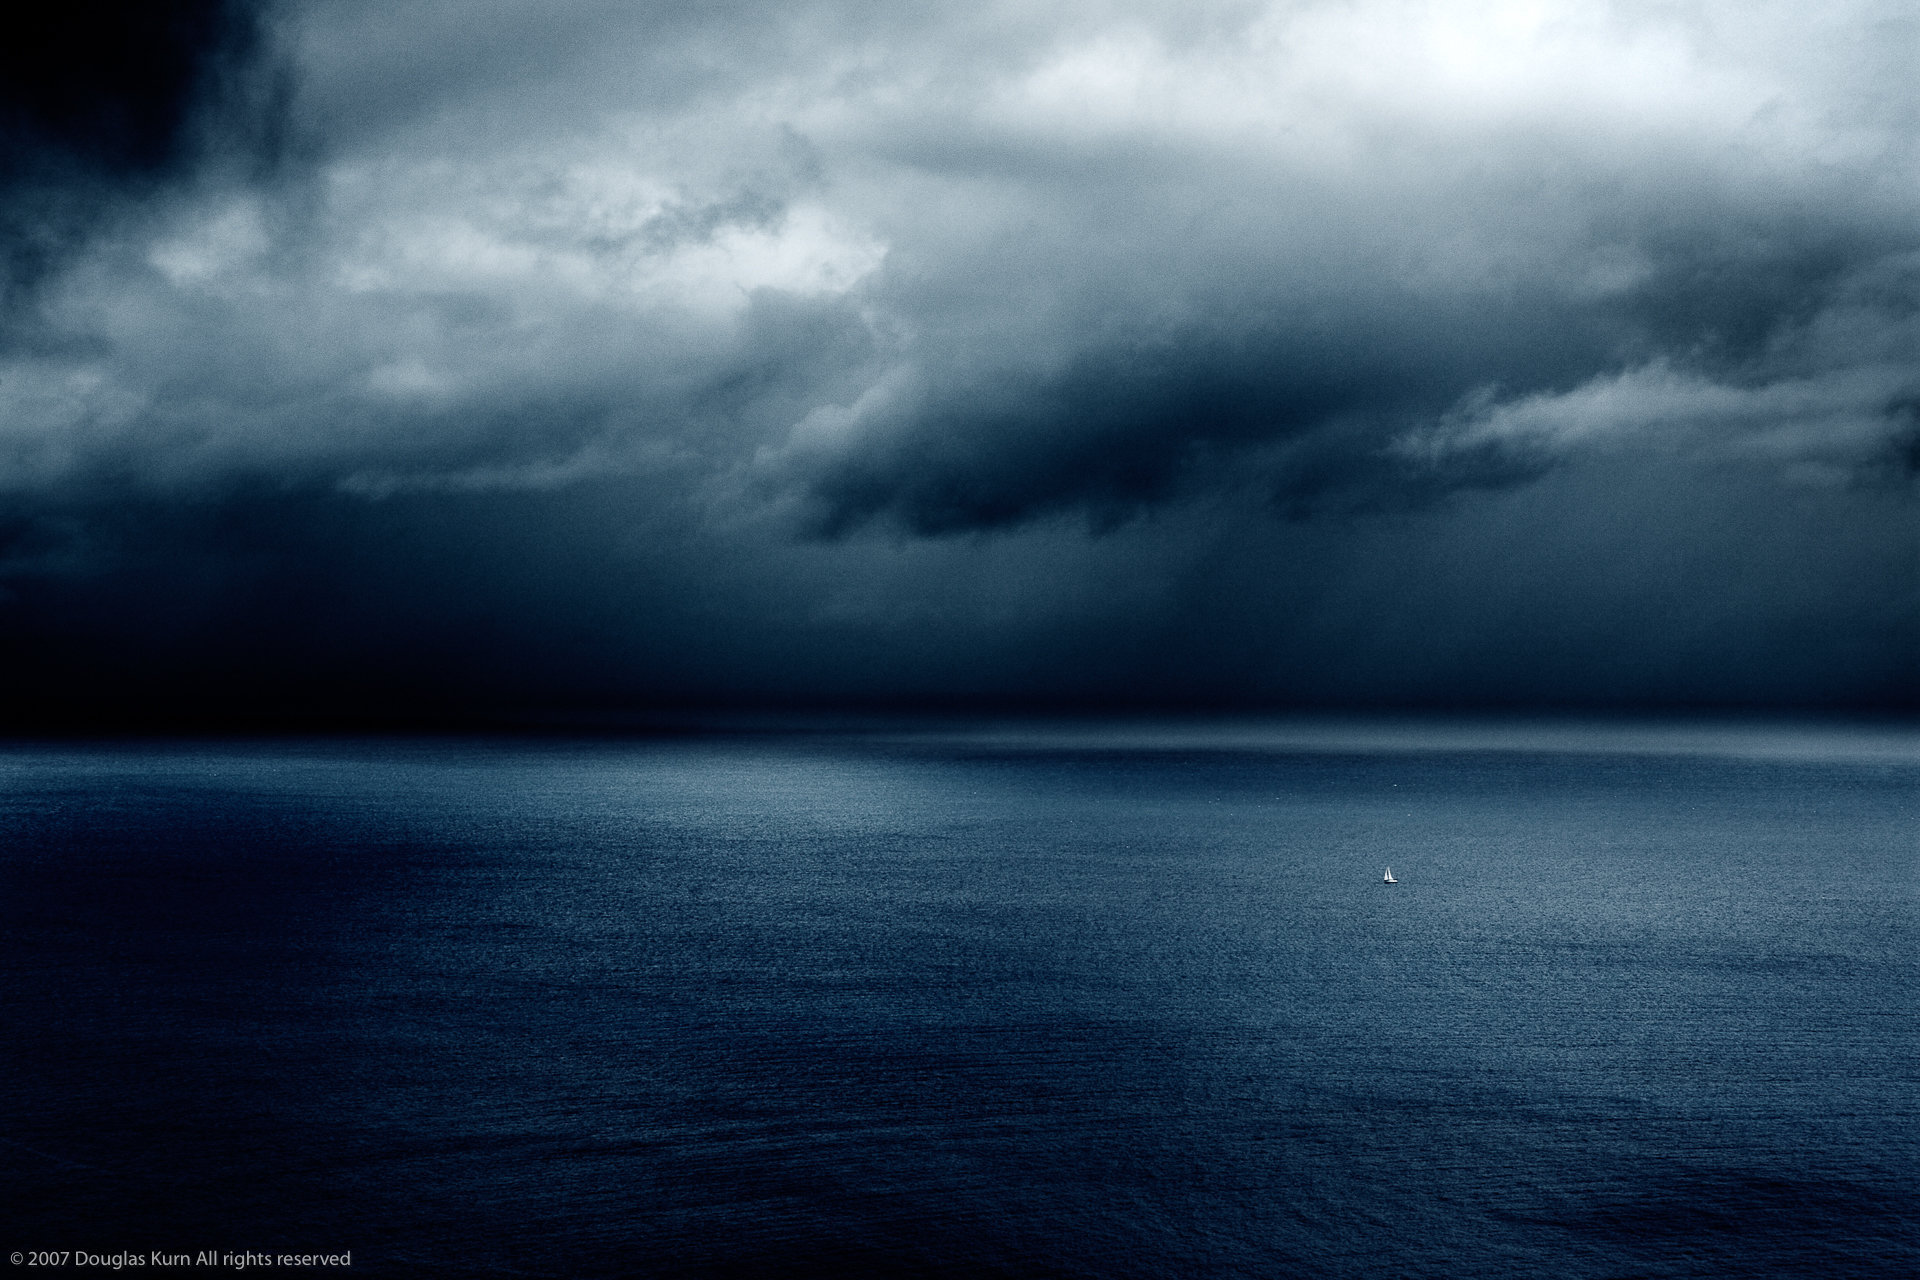 Yacht in a storm